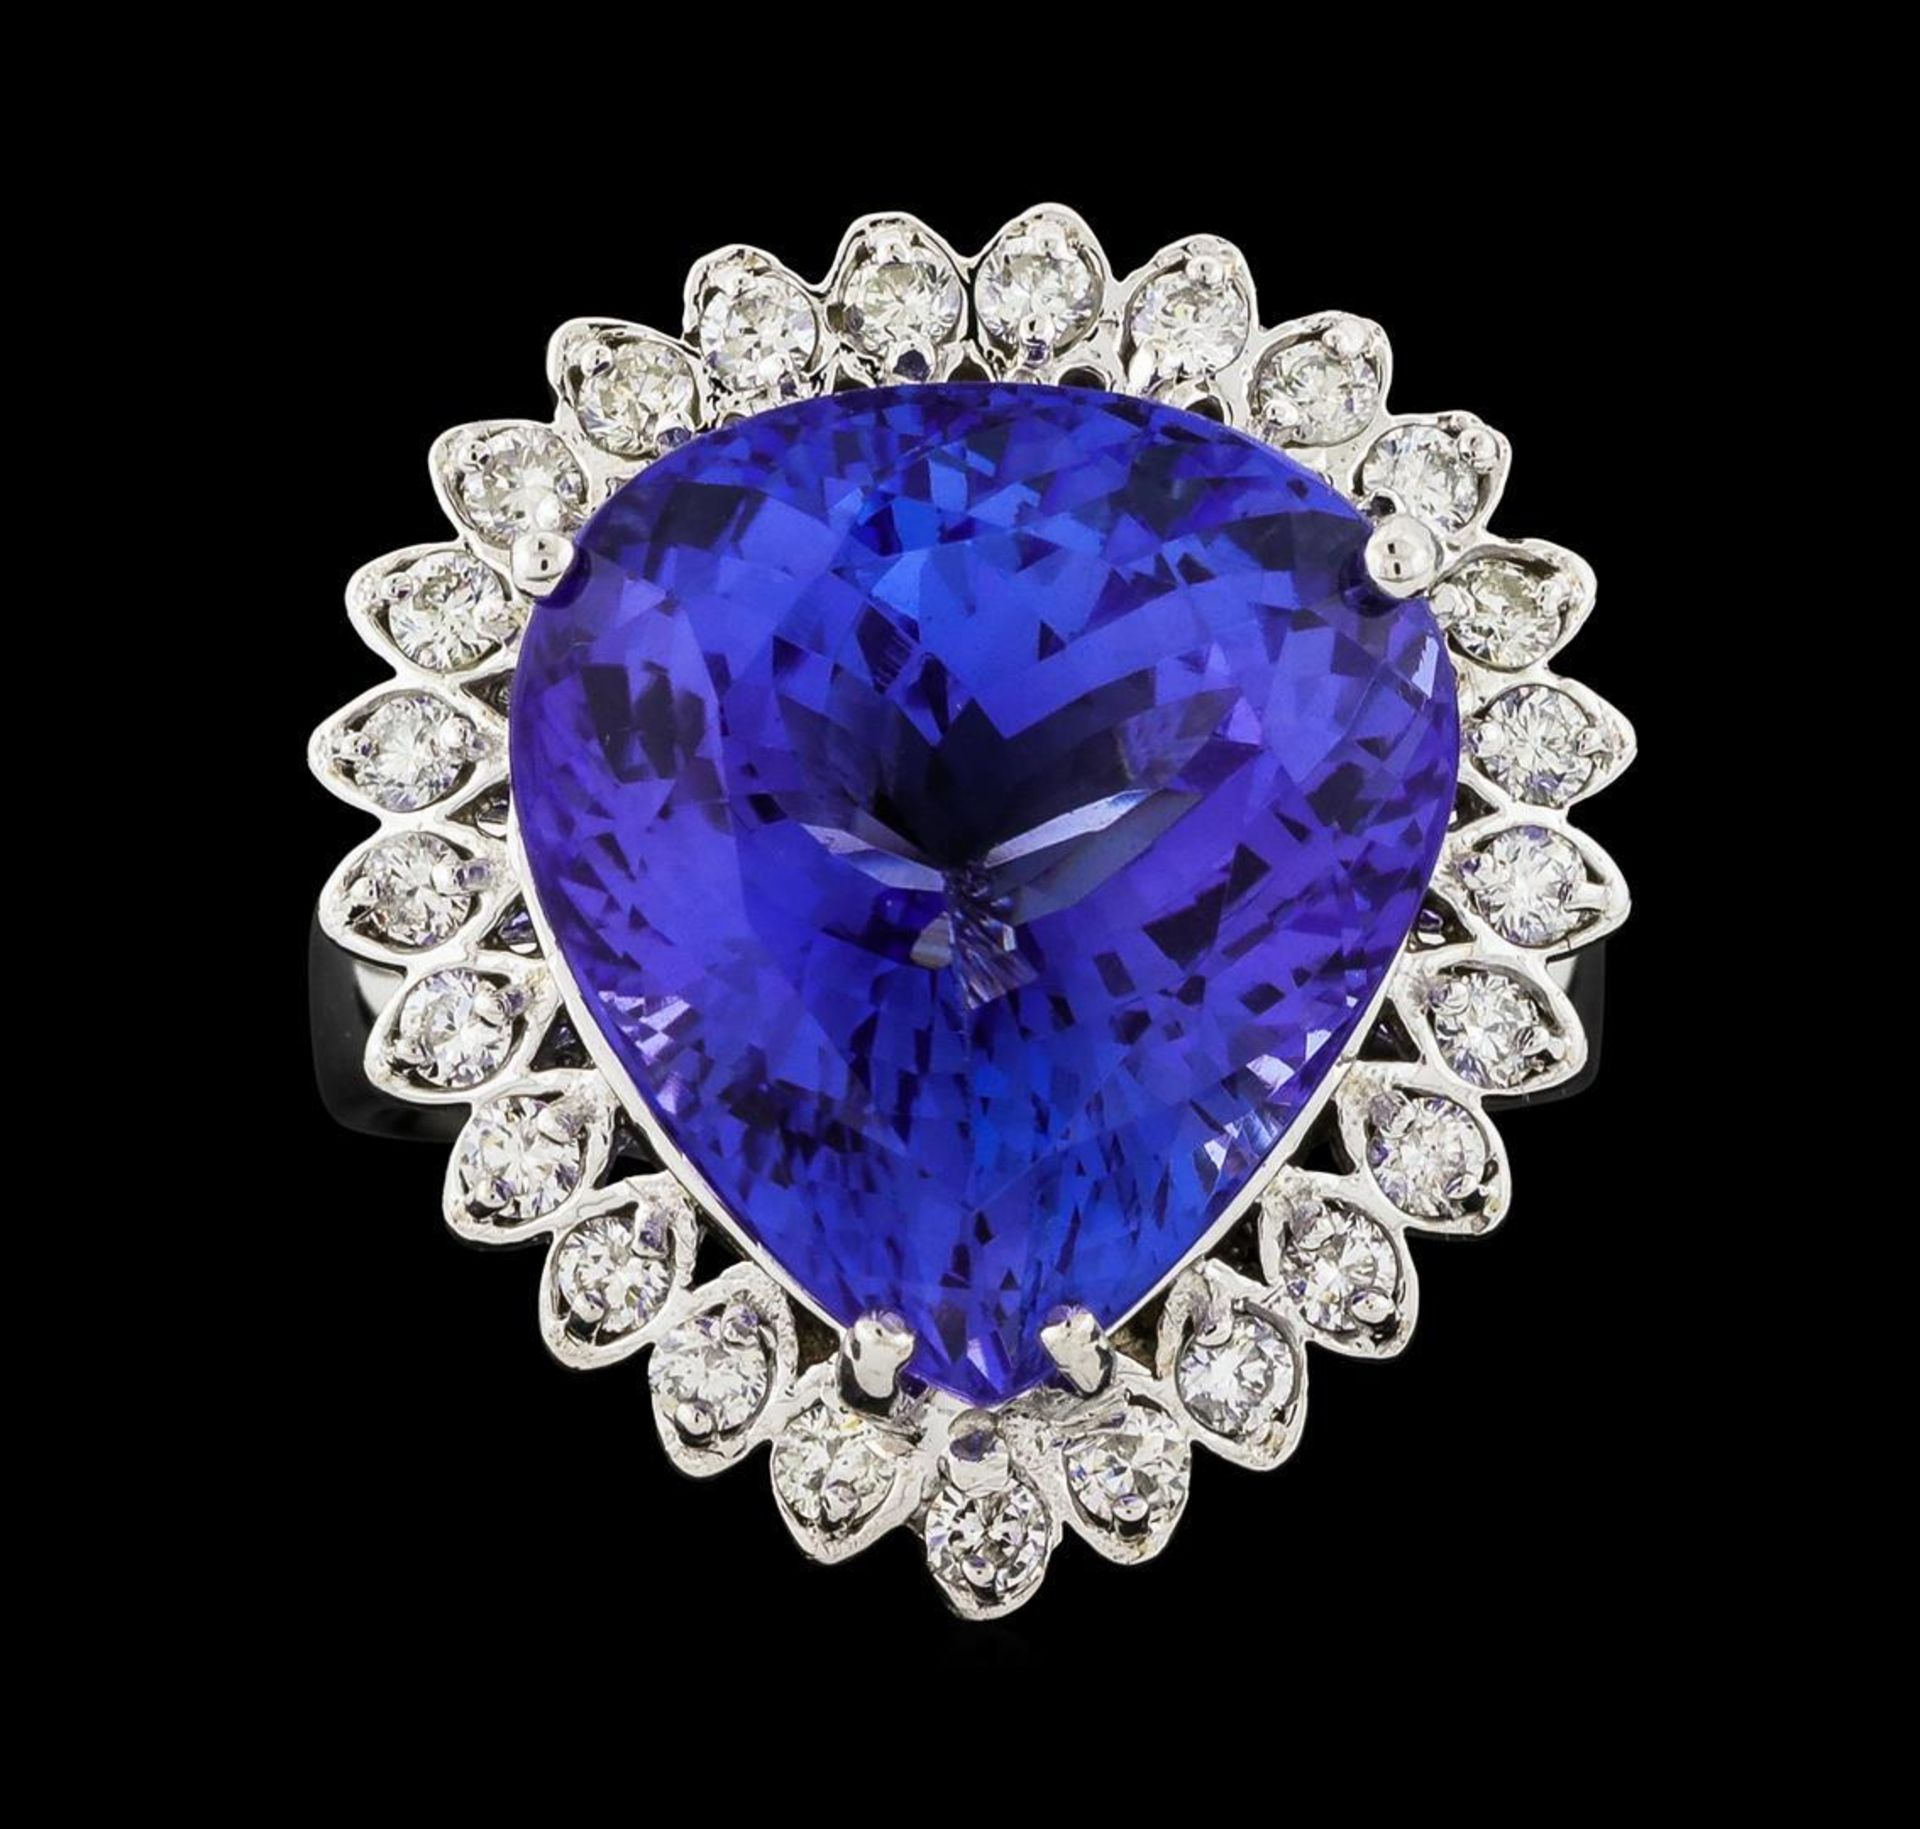 GIA Cert 13.48 ctw Tanzanite and Diamond Ring - 14KT White Gold - Image 2 of 6